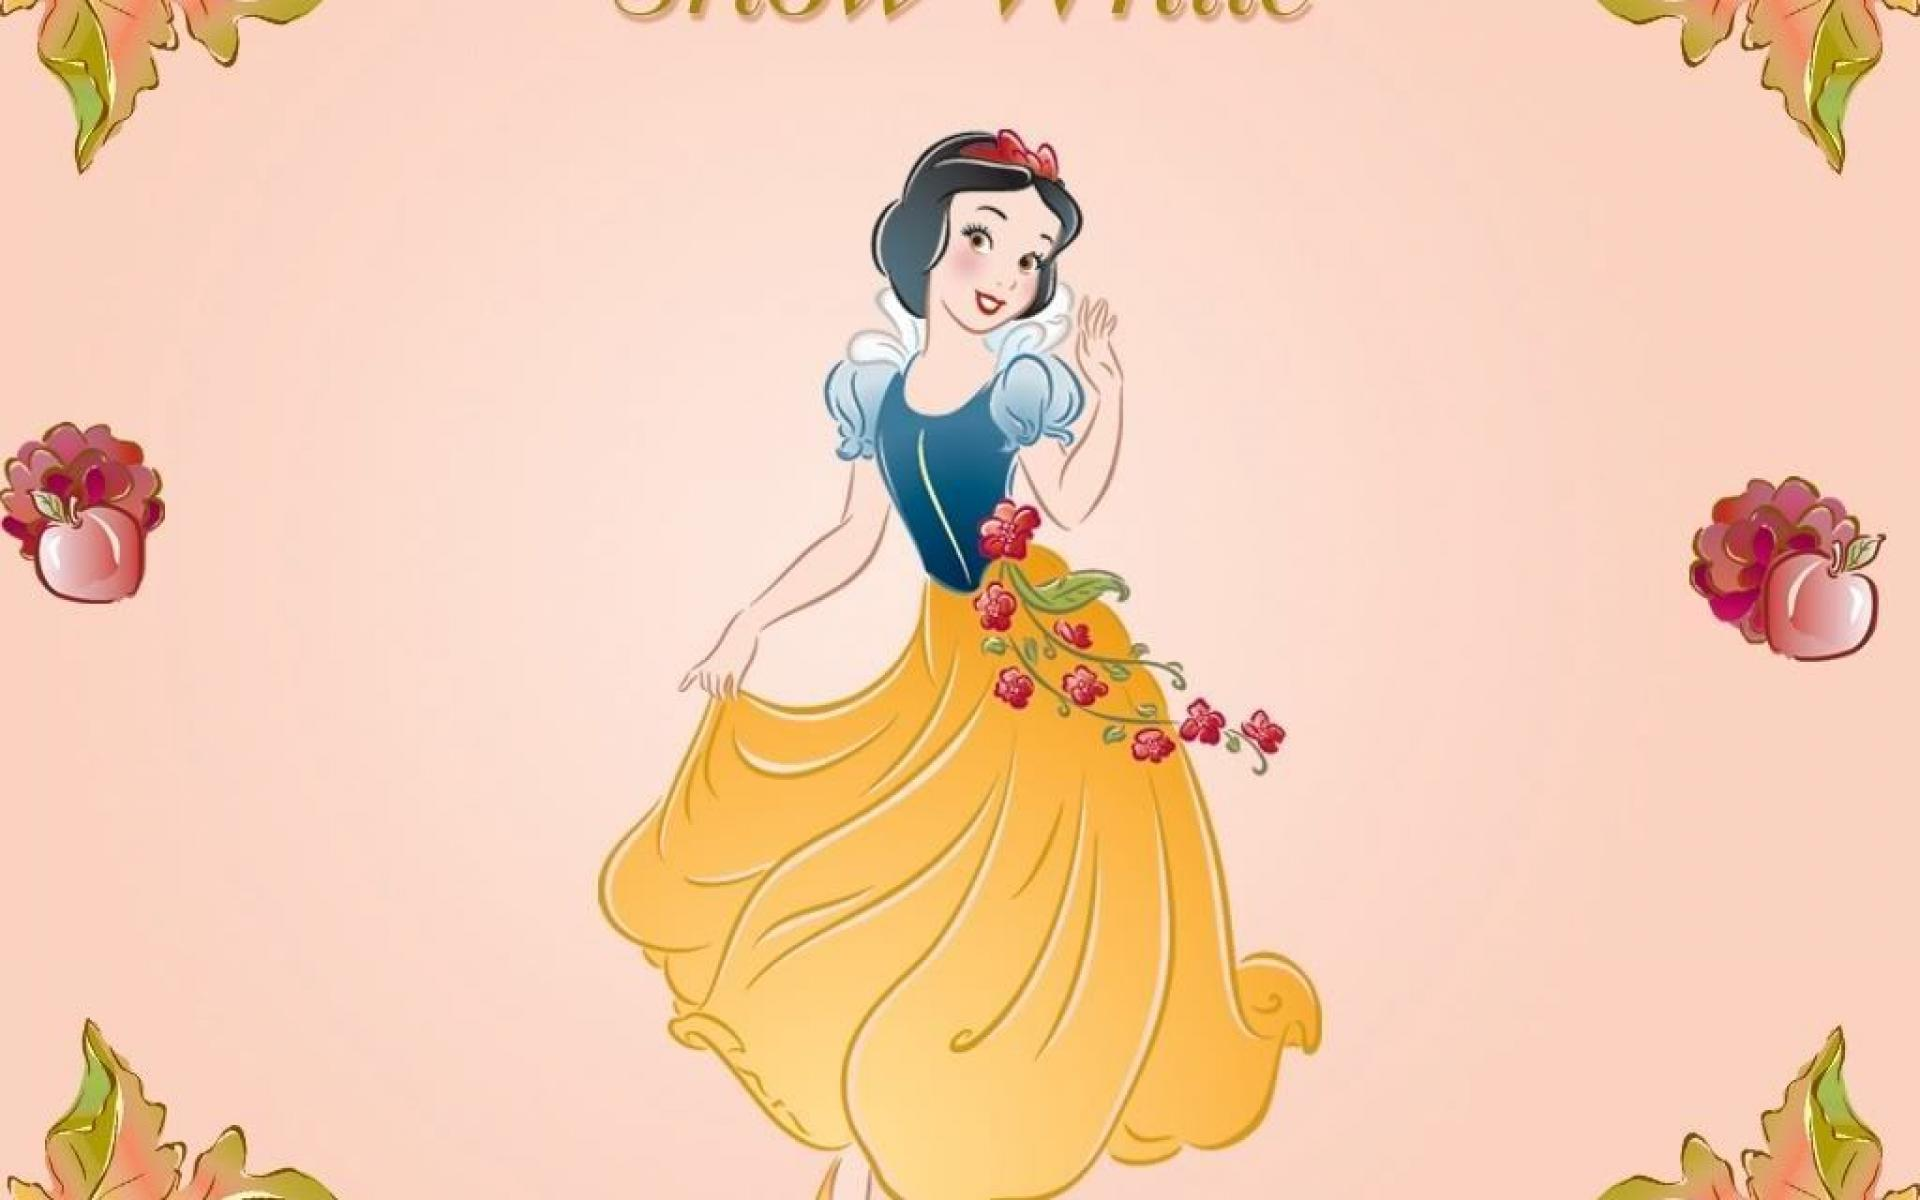 Pics cartton girl snow white and 7dwarfs  adult toons